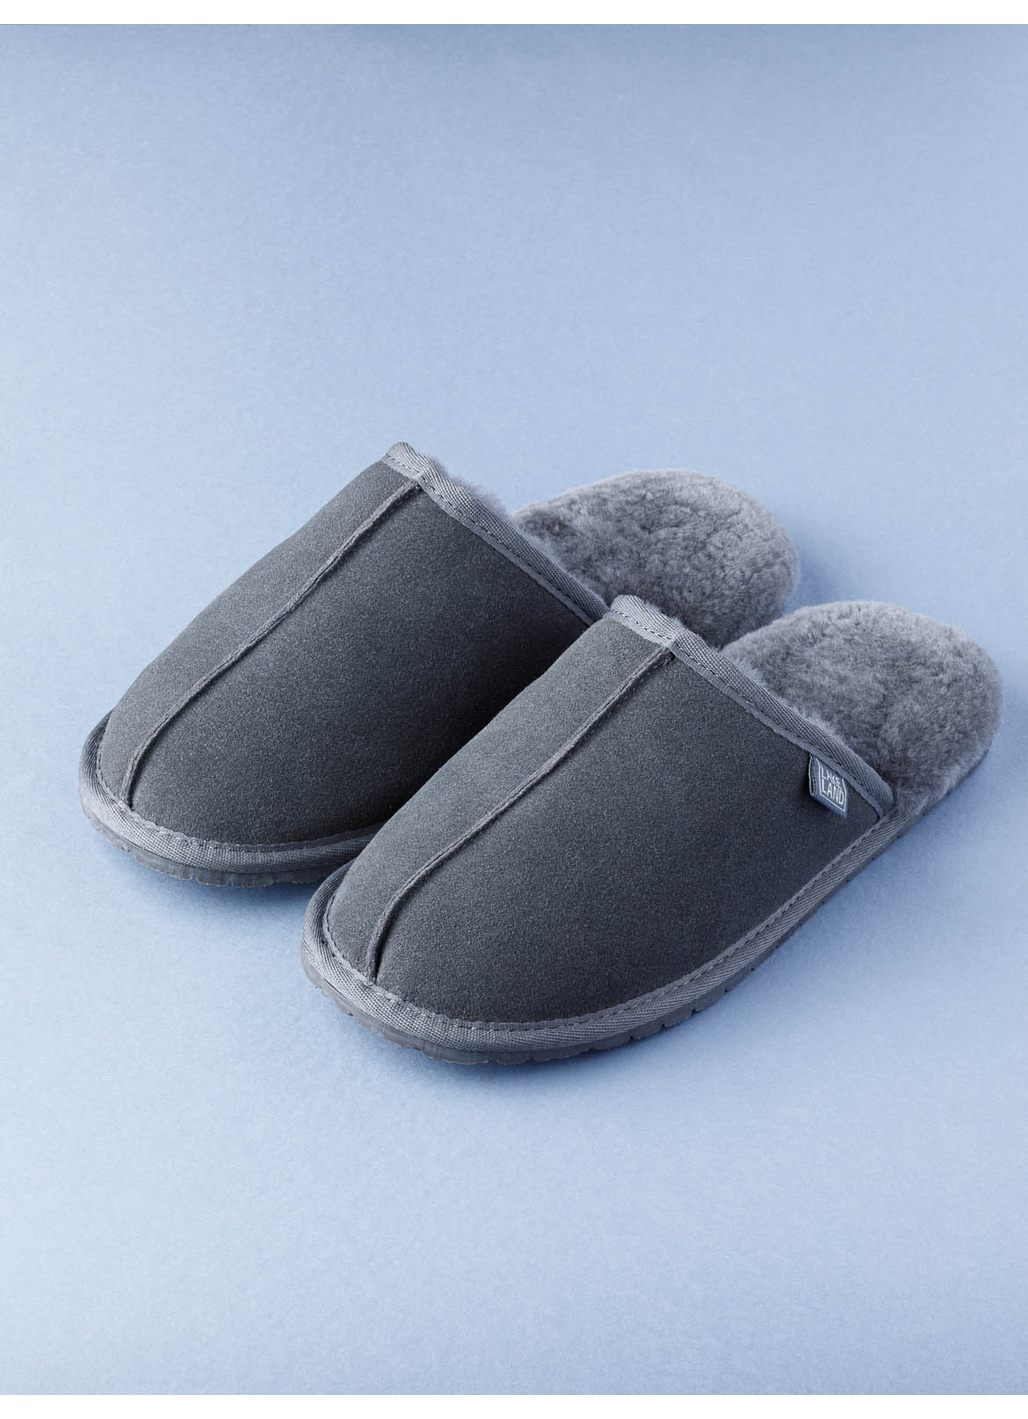 Men's Sheepskin Slider Slippers in Grey